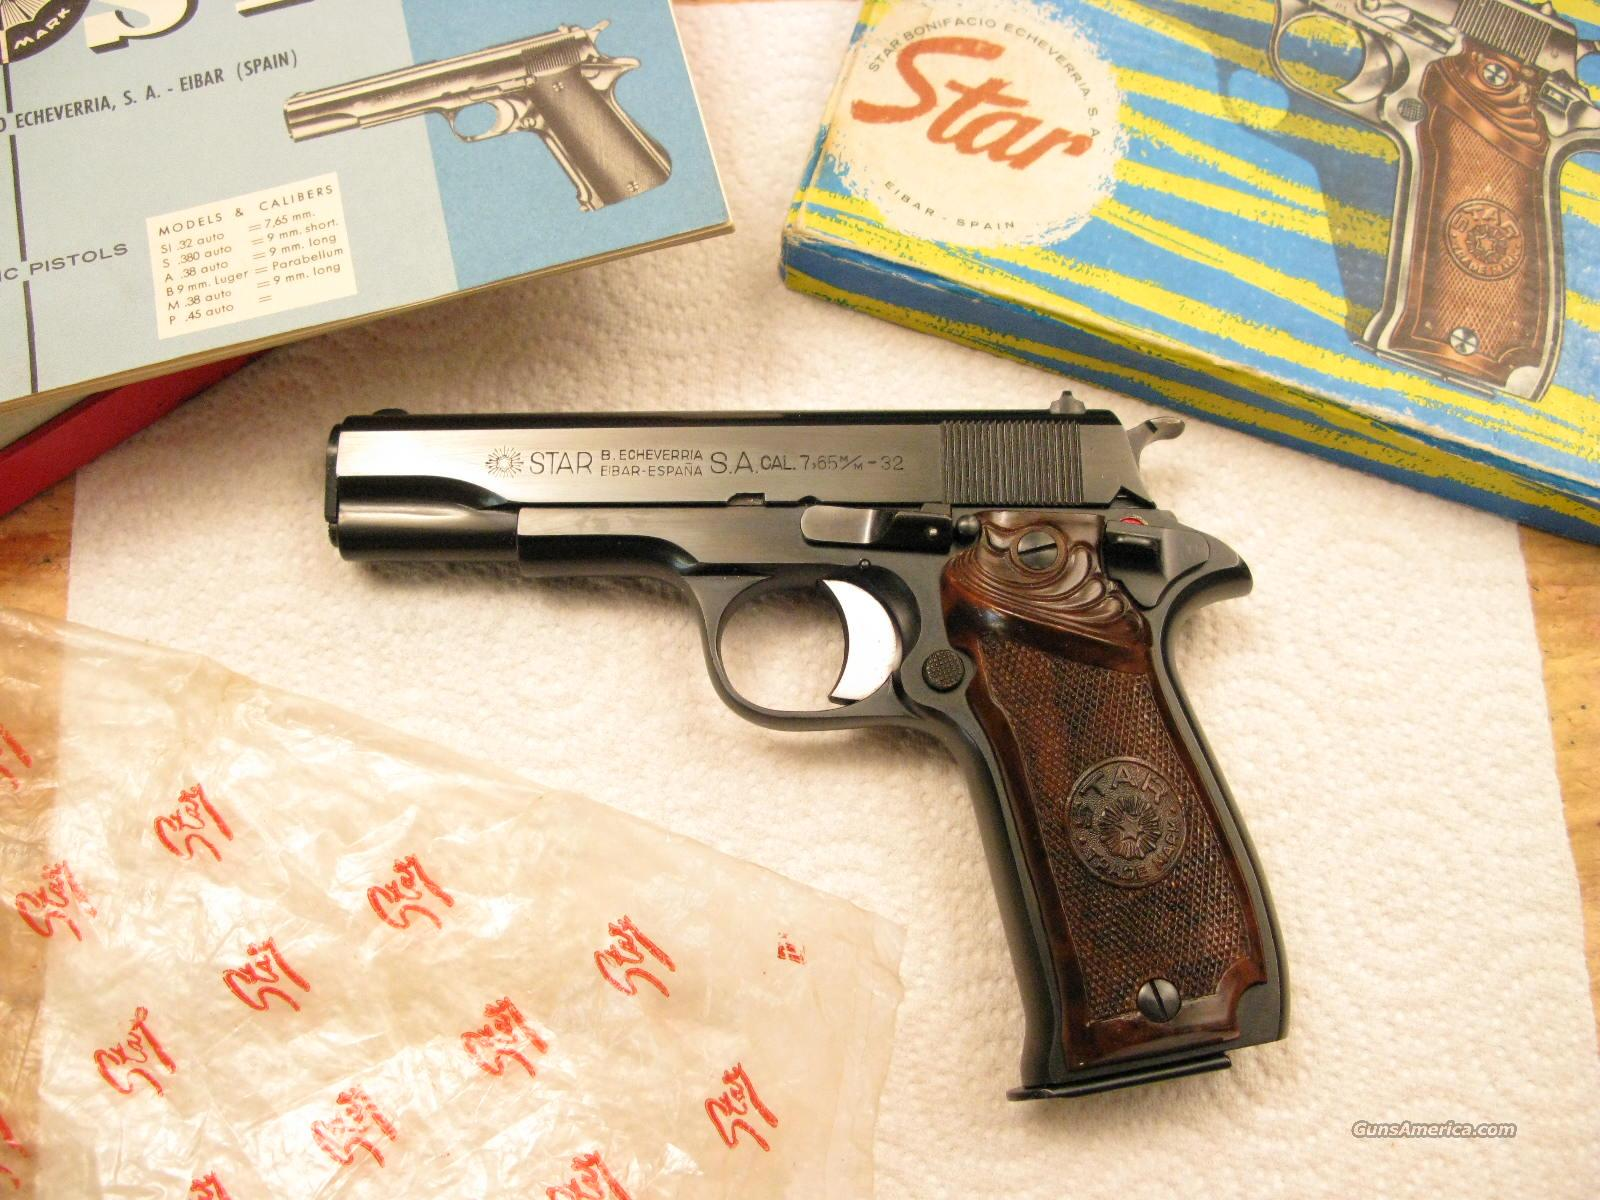 star model si 32 acp new in box for sale rh gunsamerica com Old Gun Manuals Bostitch Nail Gun Manual